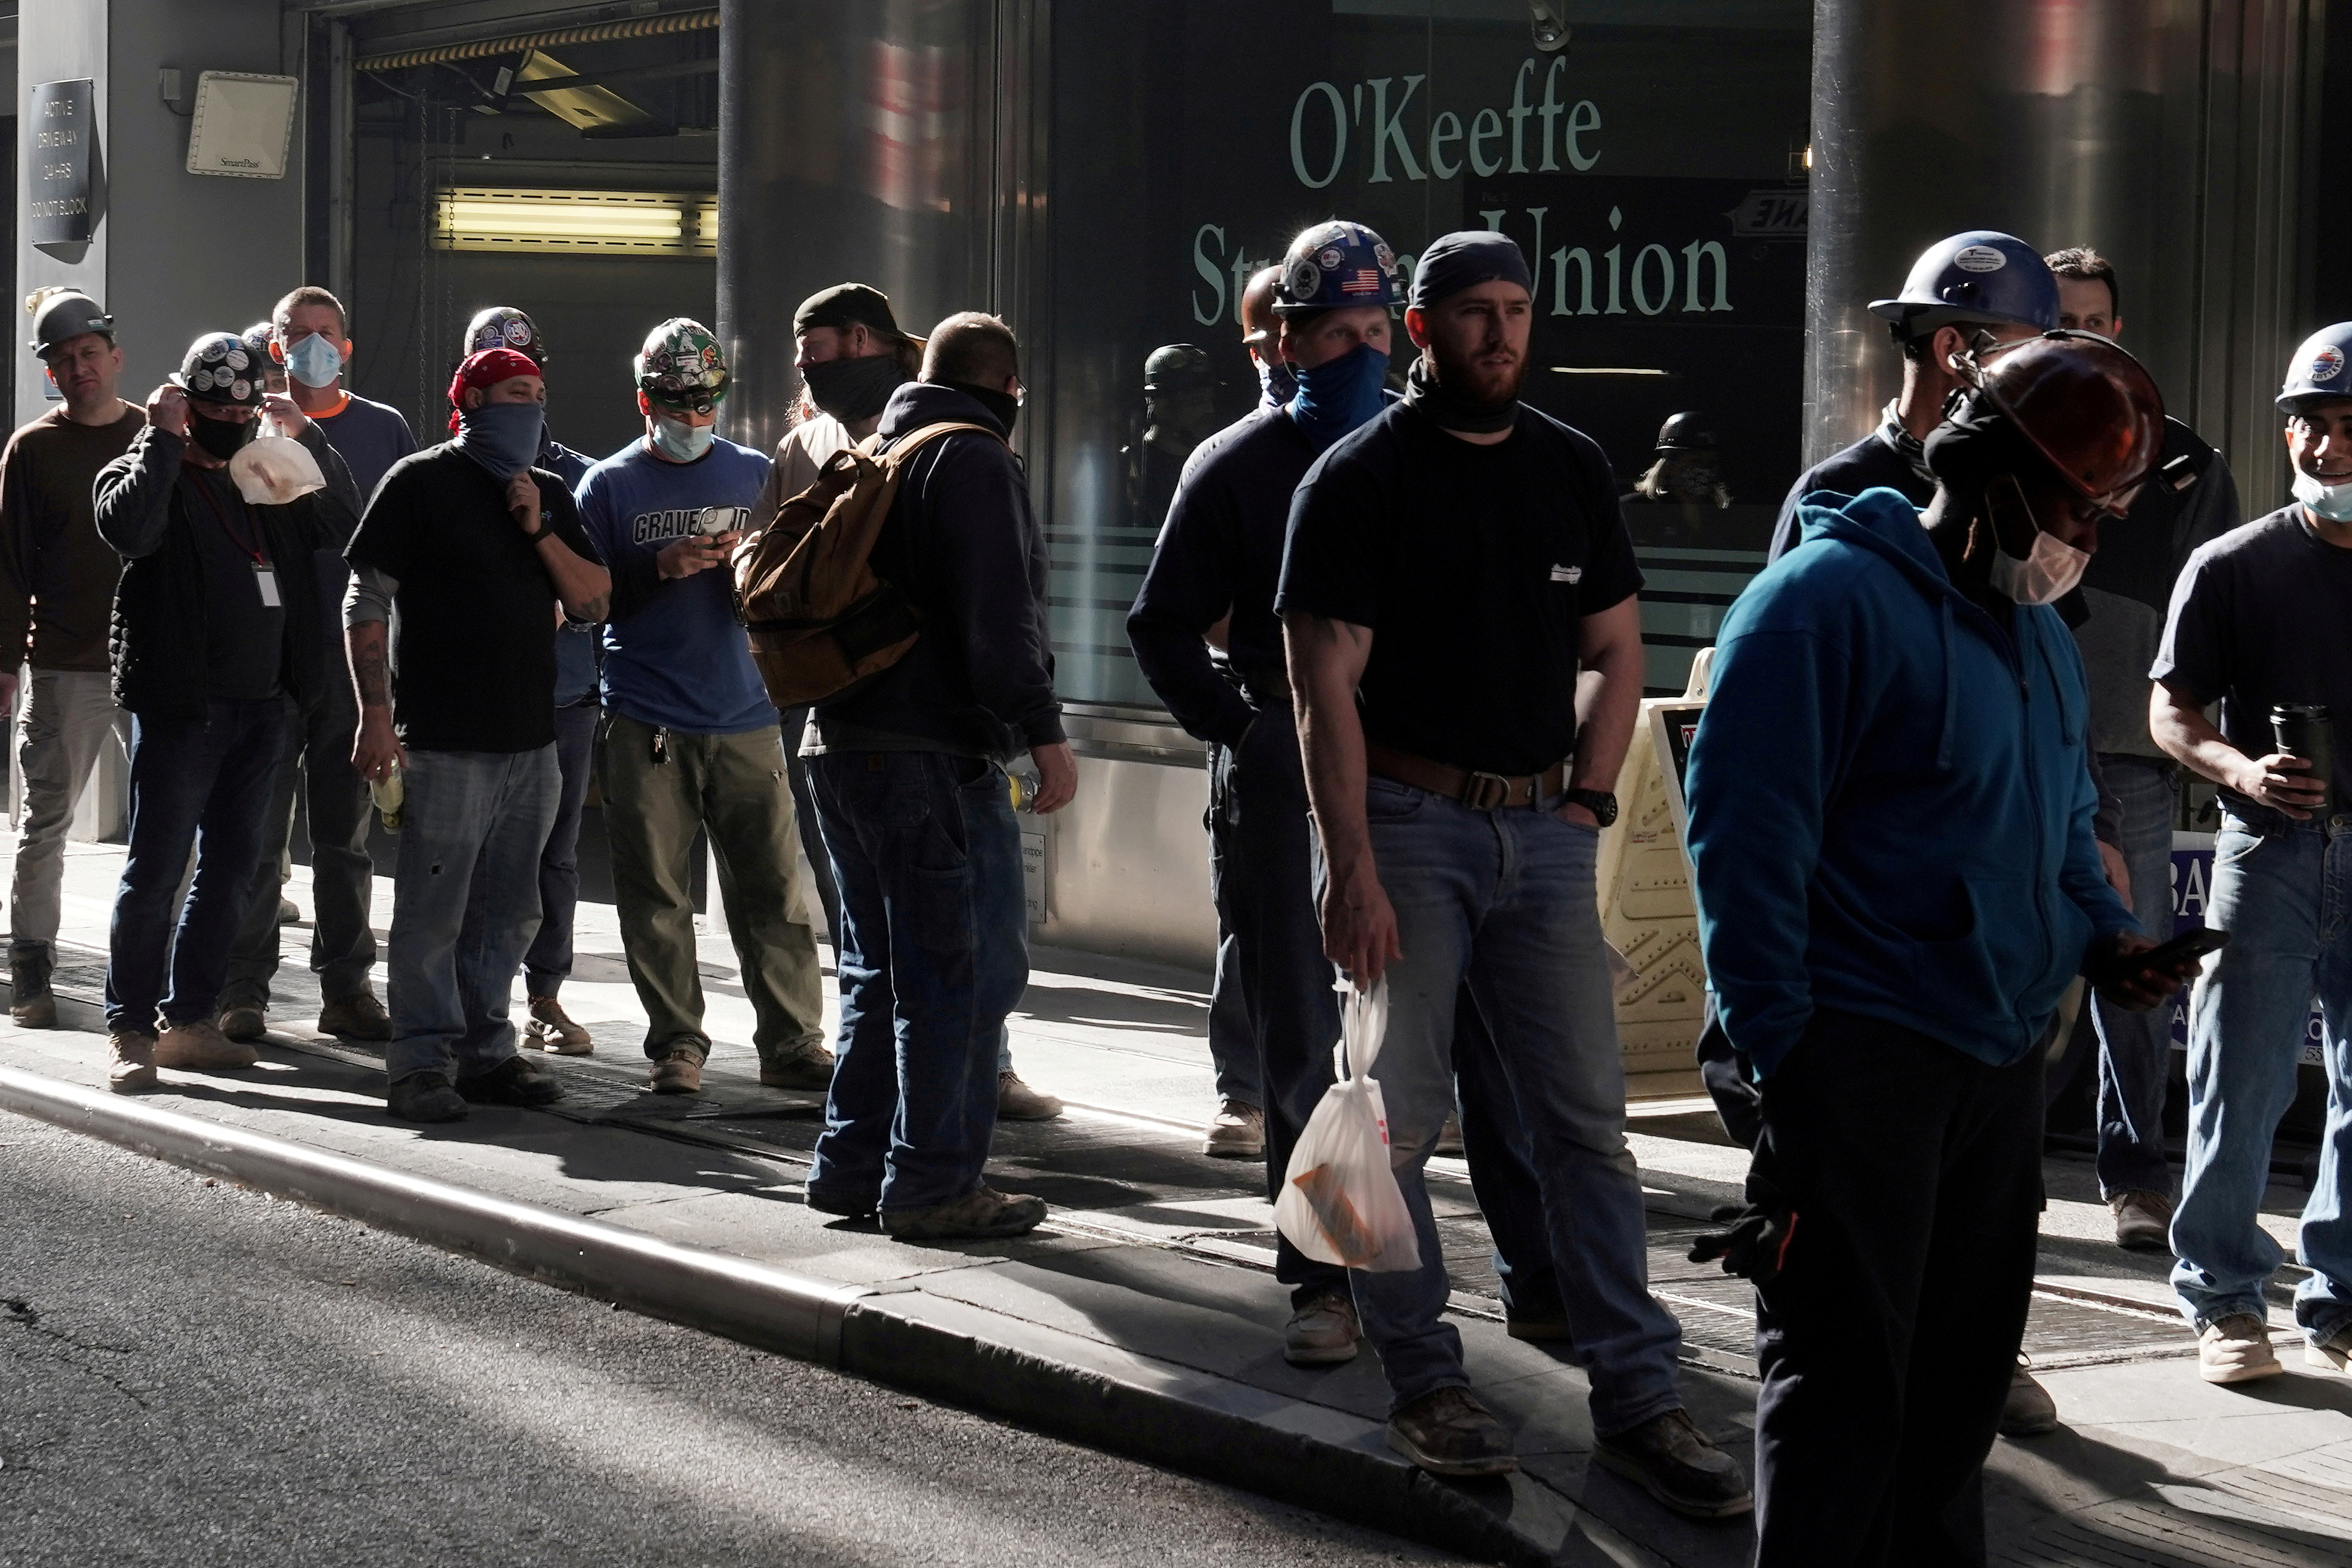 Construction workers wait in line to do a temperature test to return to the job site after lunch, amid the coronavirus disease (COVID-19) outbreak, in the Manhattan borough of New York City, New York, U.S., November 10, 2020. REUTERS/Carlo Allegri